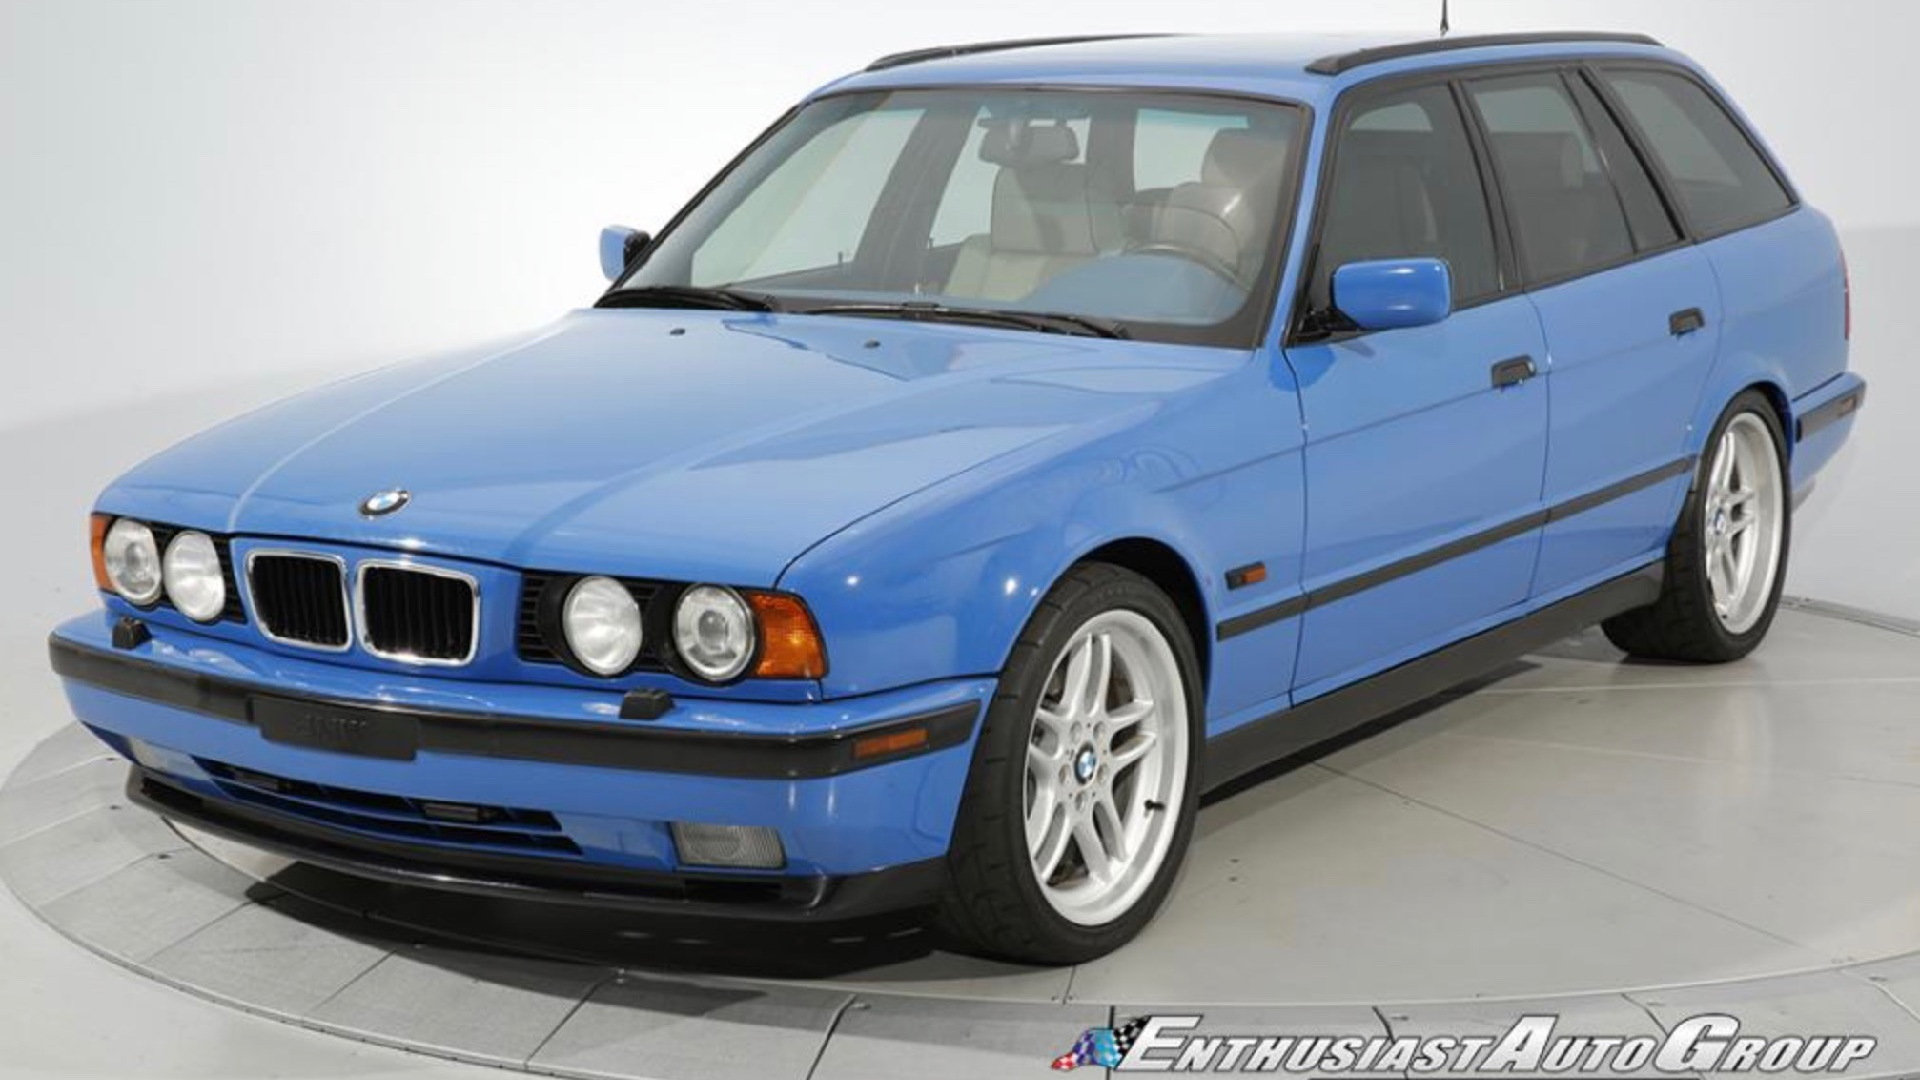 1995 BMW M5 Touring (Photo by Enthusiast Auto Group)